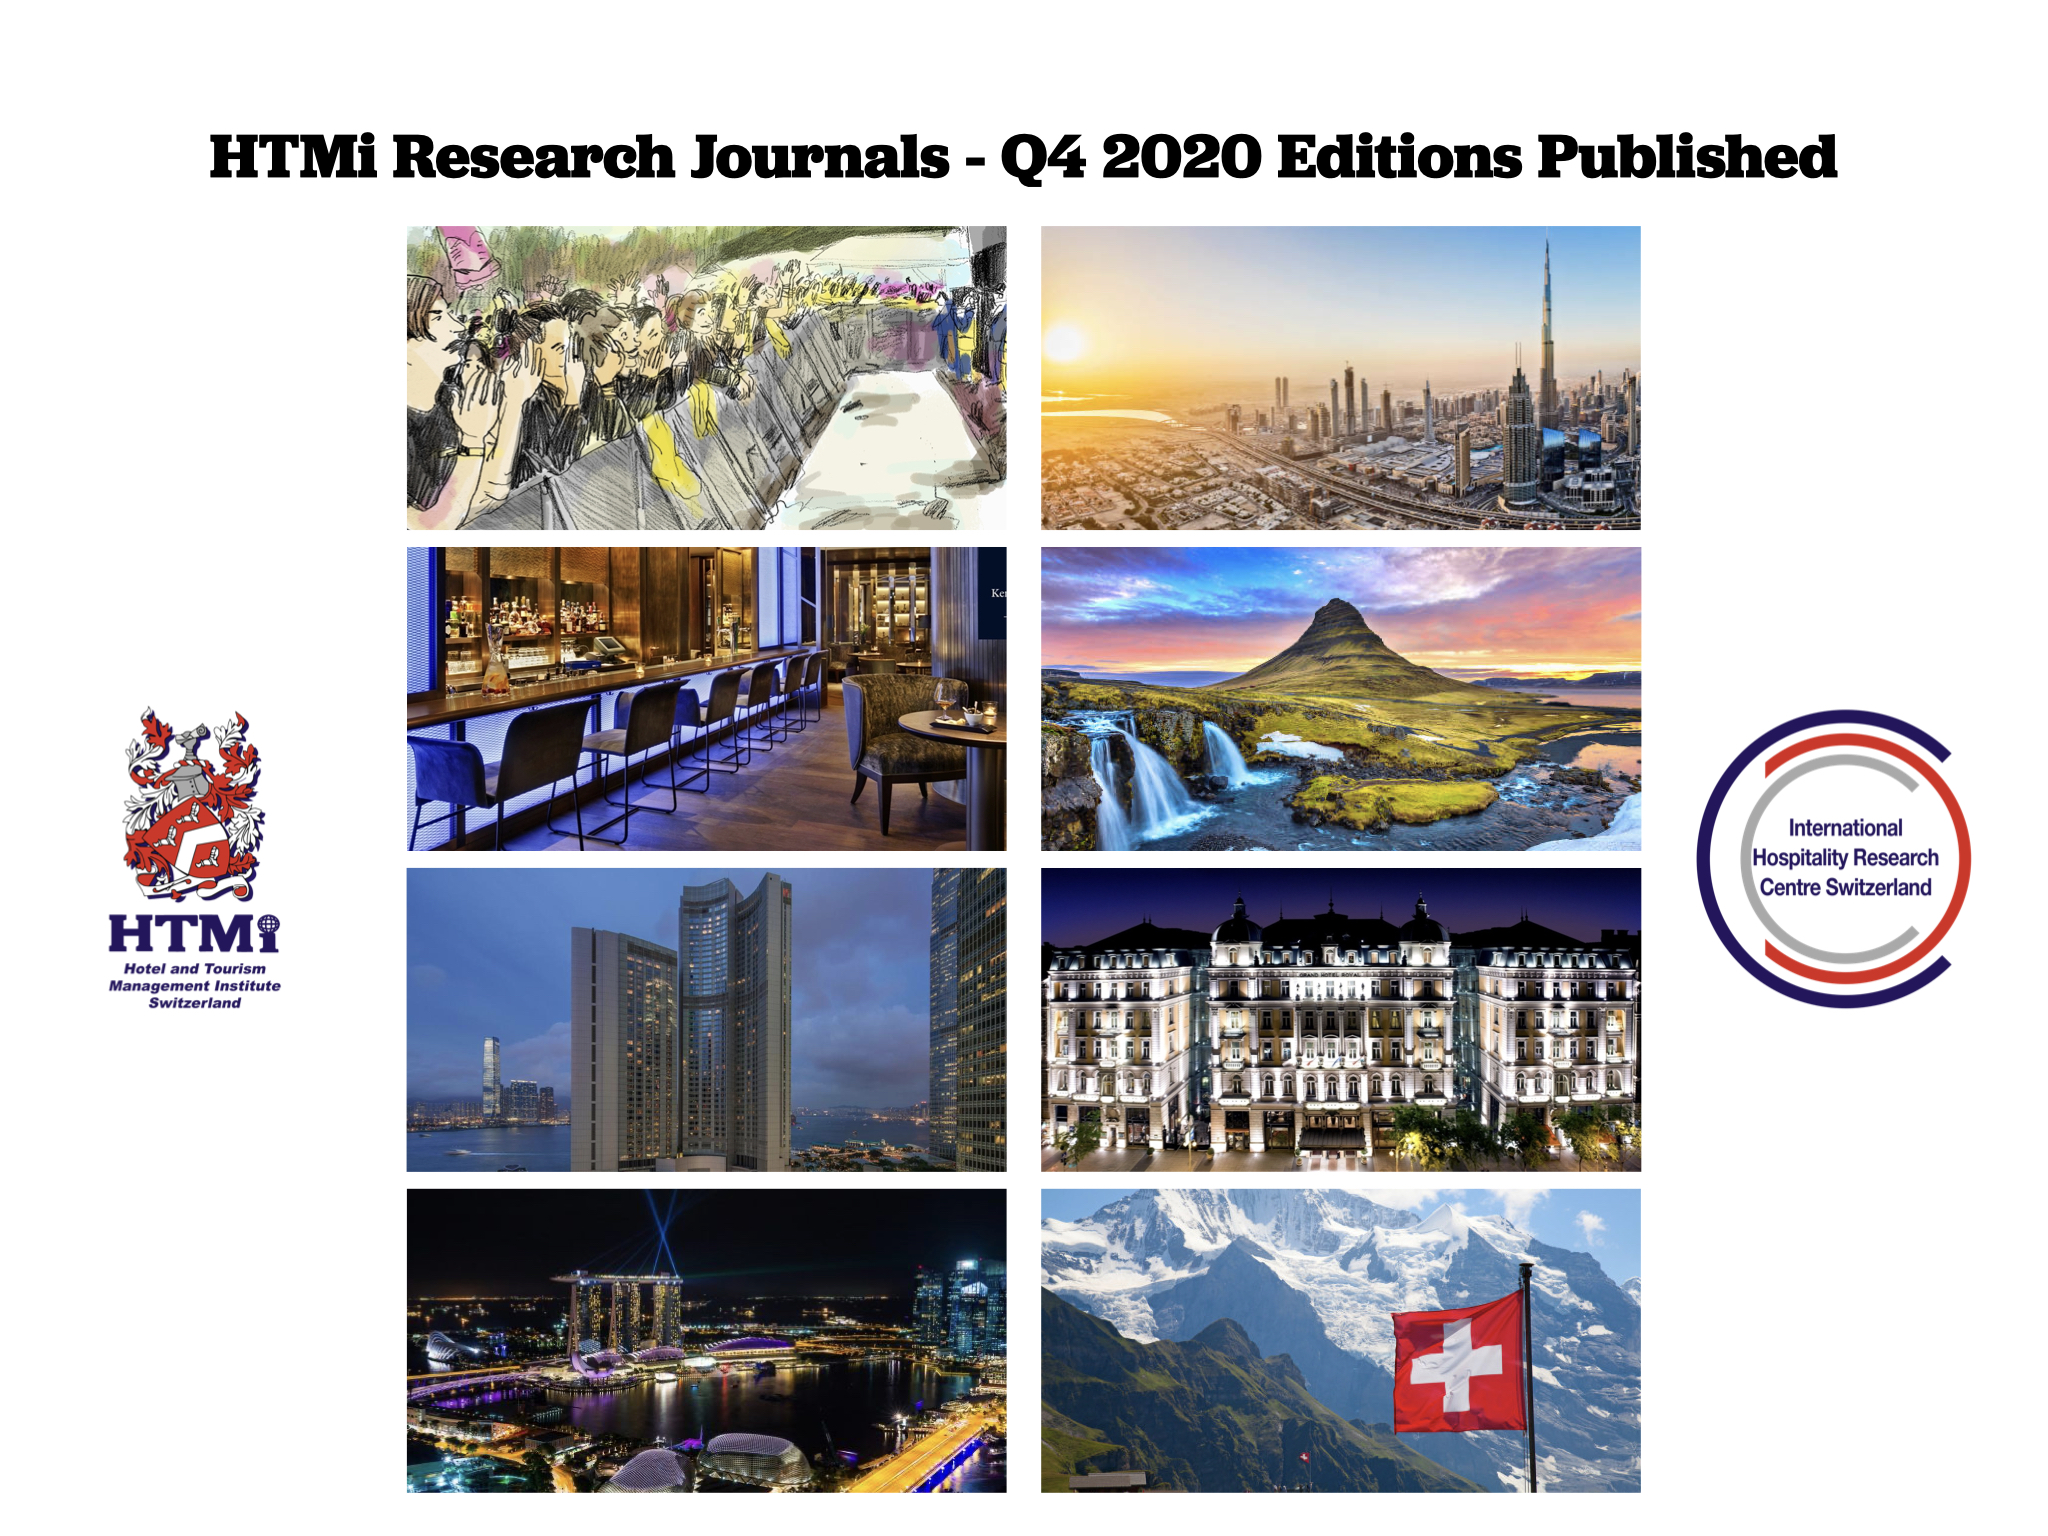 HTMi Research Journals – Q4 2020 Editions Published